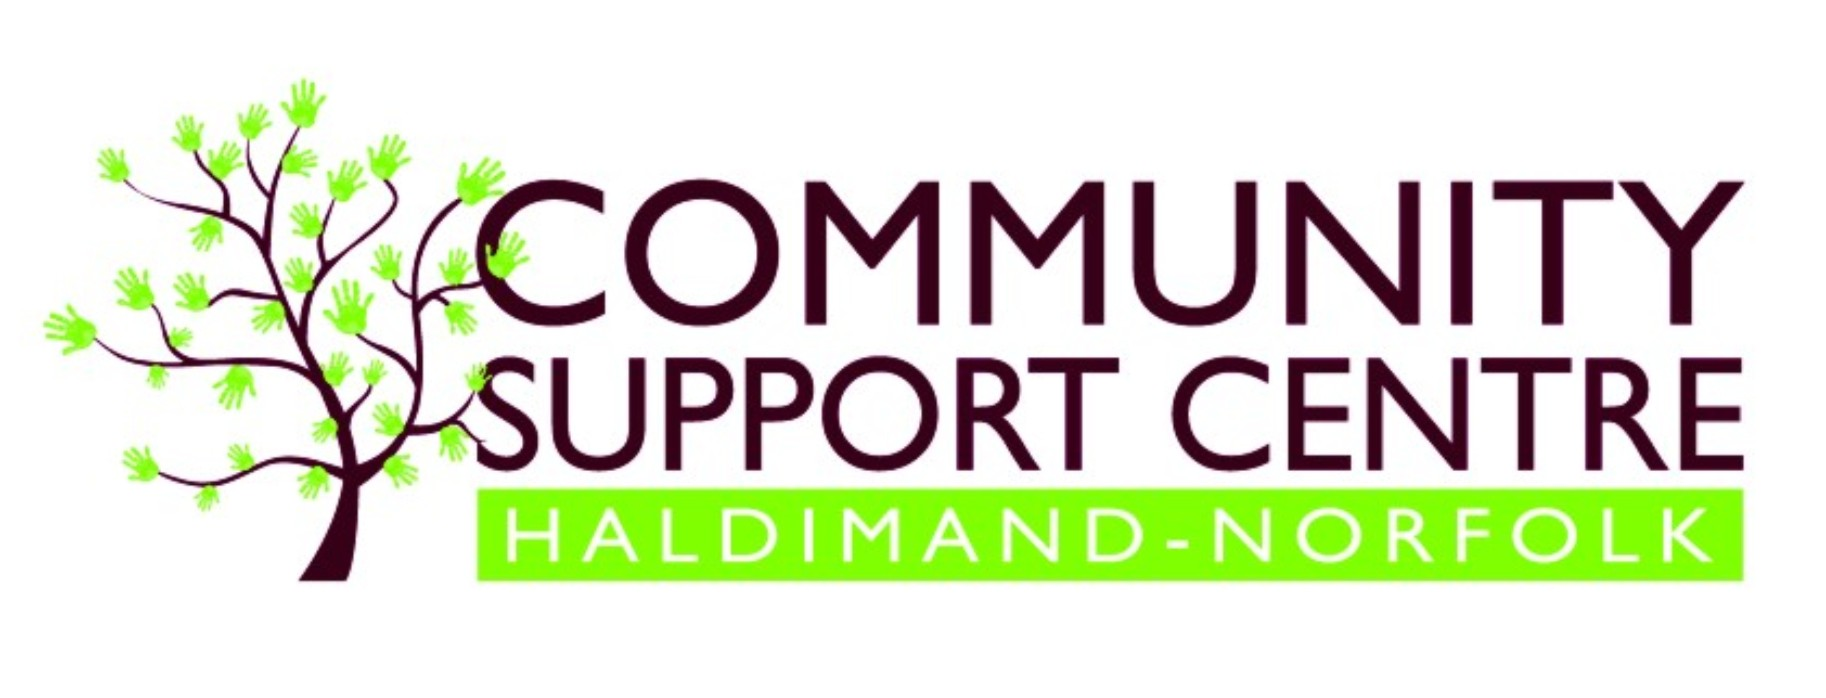 Community Support Centre - Haldimand Nor